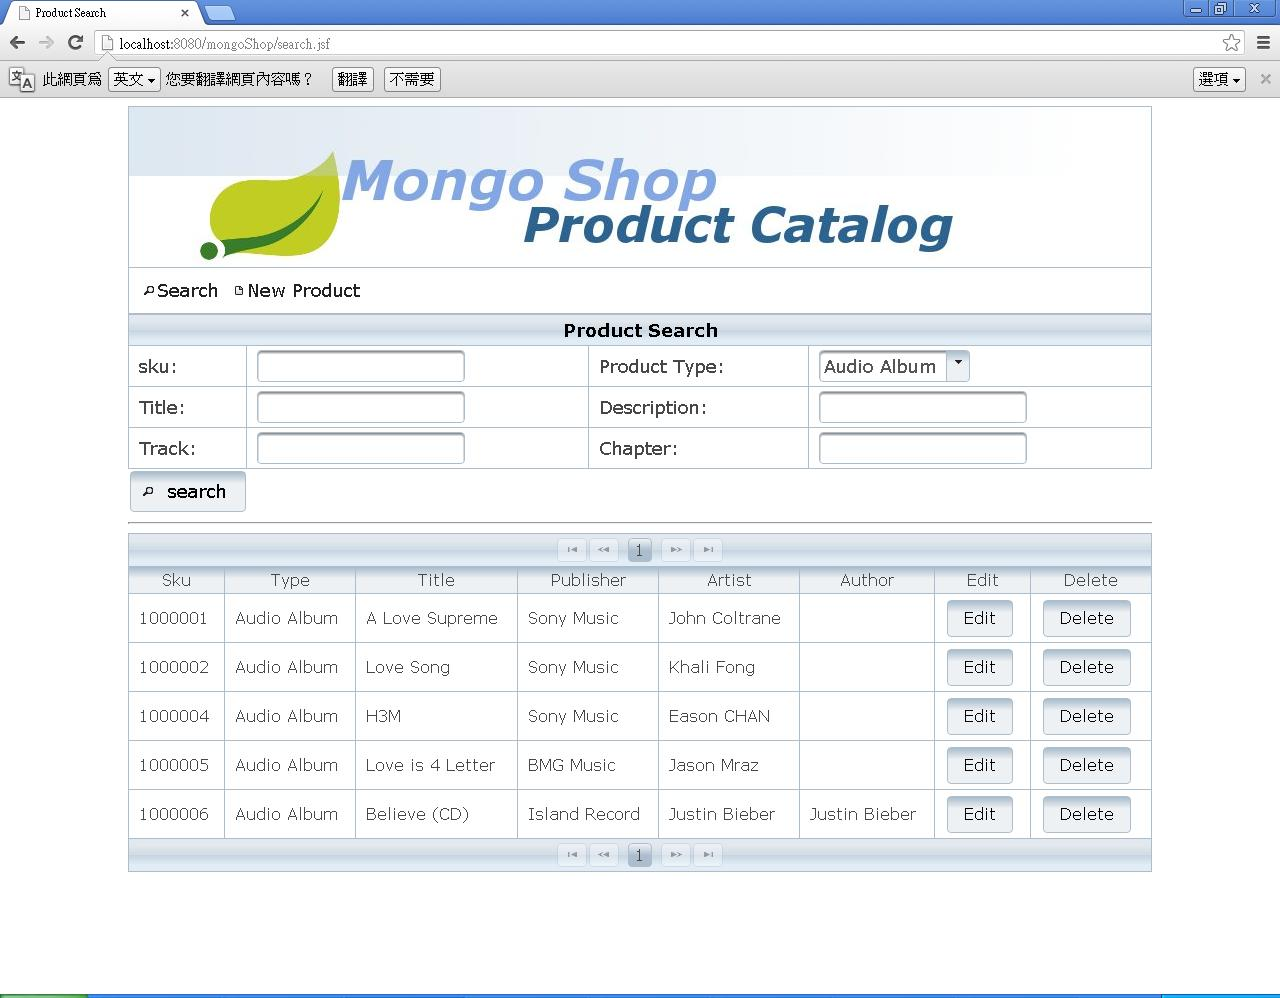 Spring data mongodb and jsf integration tutorial introduction to sample application mongoshop product catalog baditri Choice Image